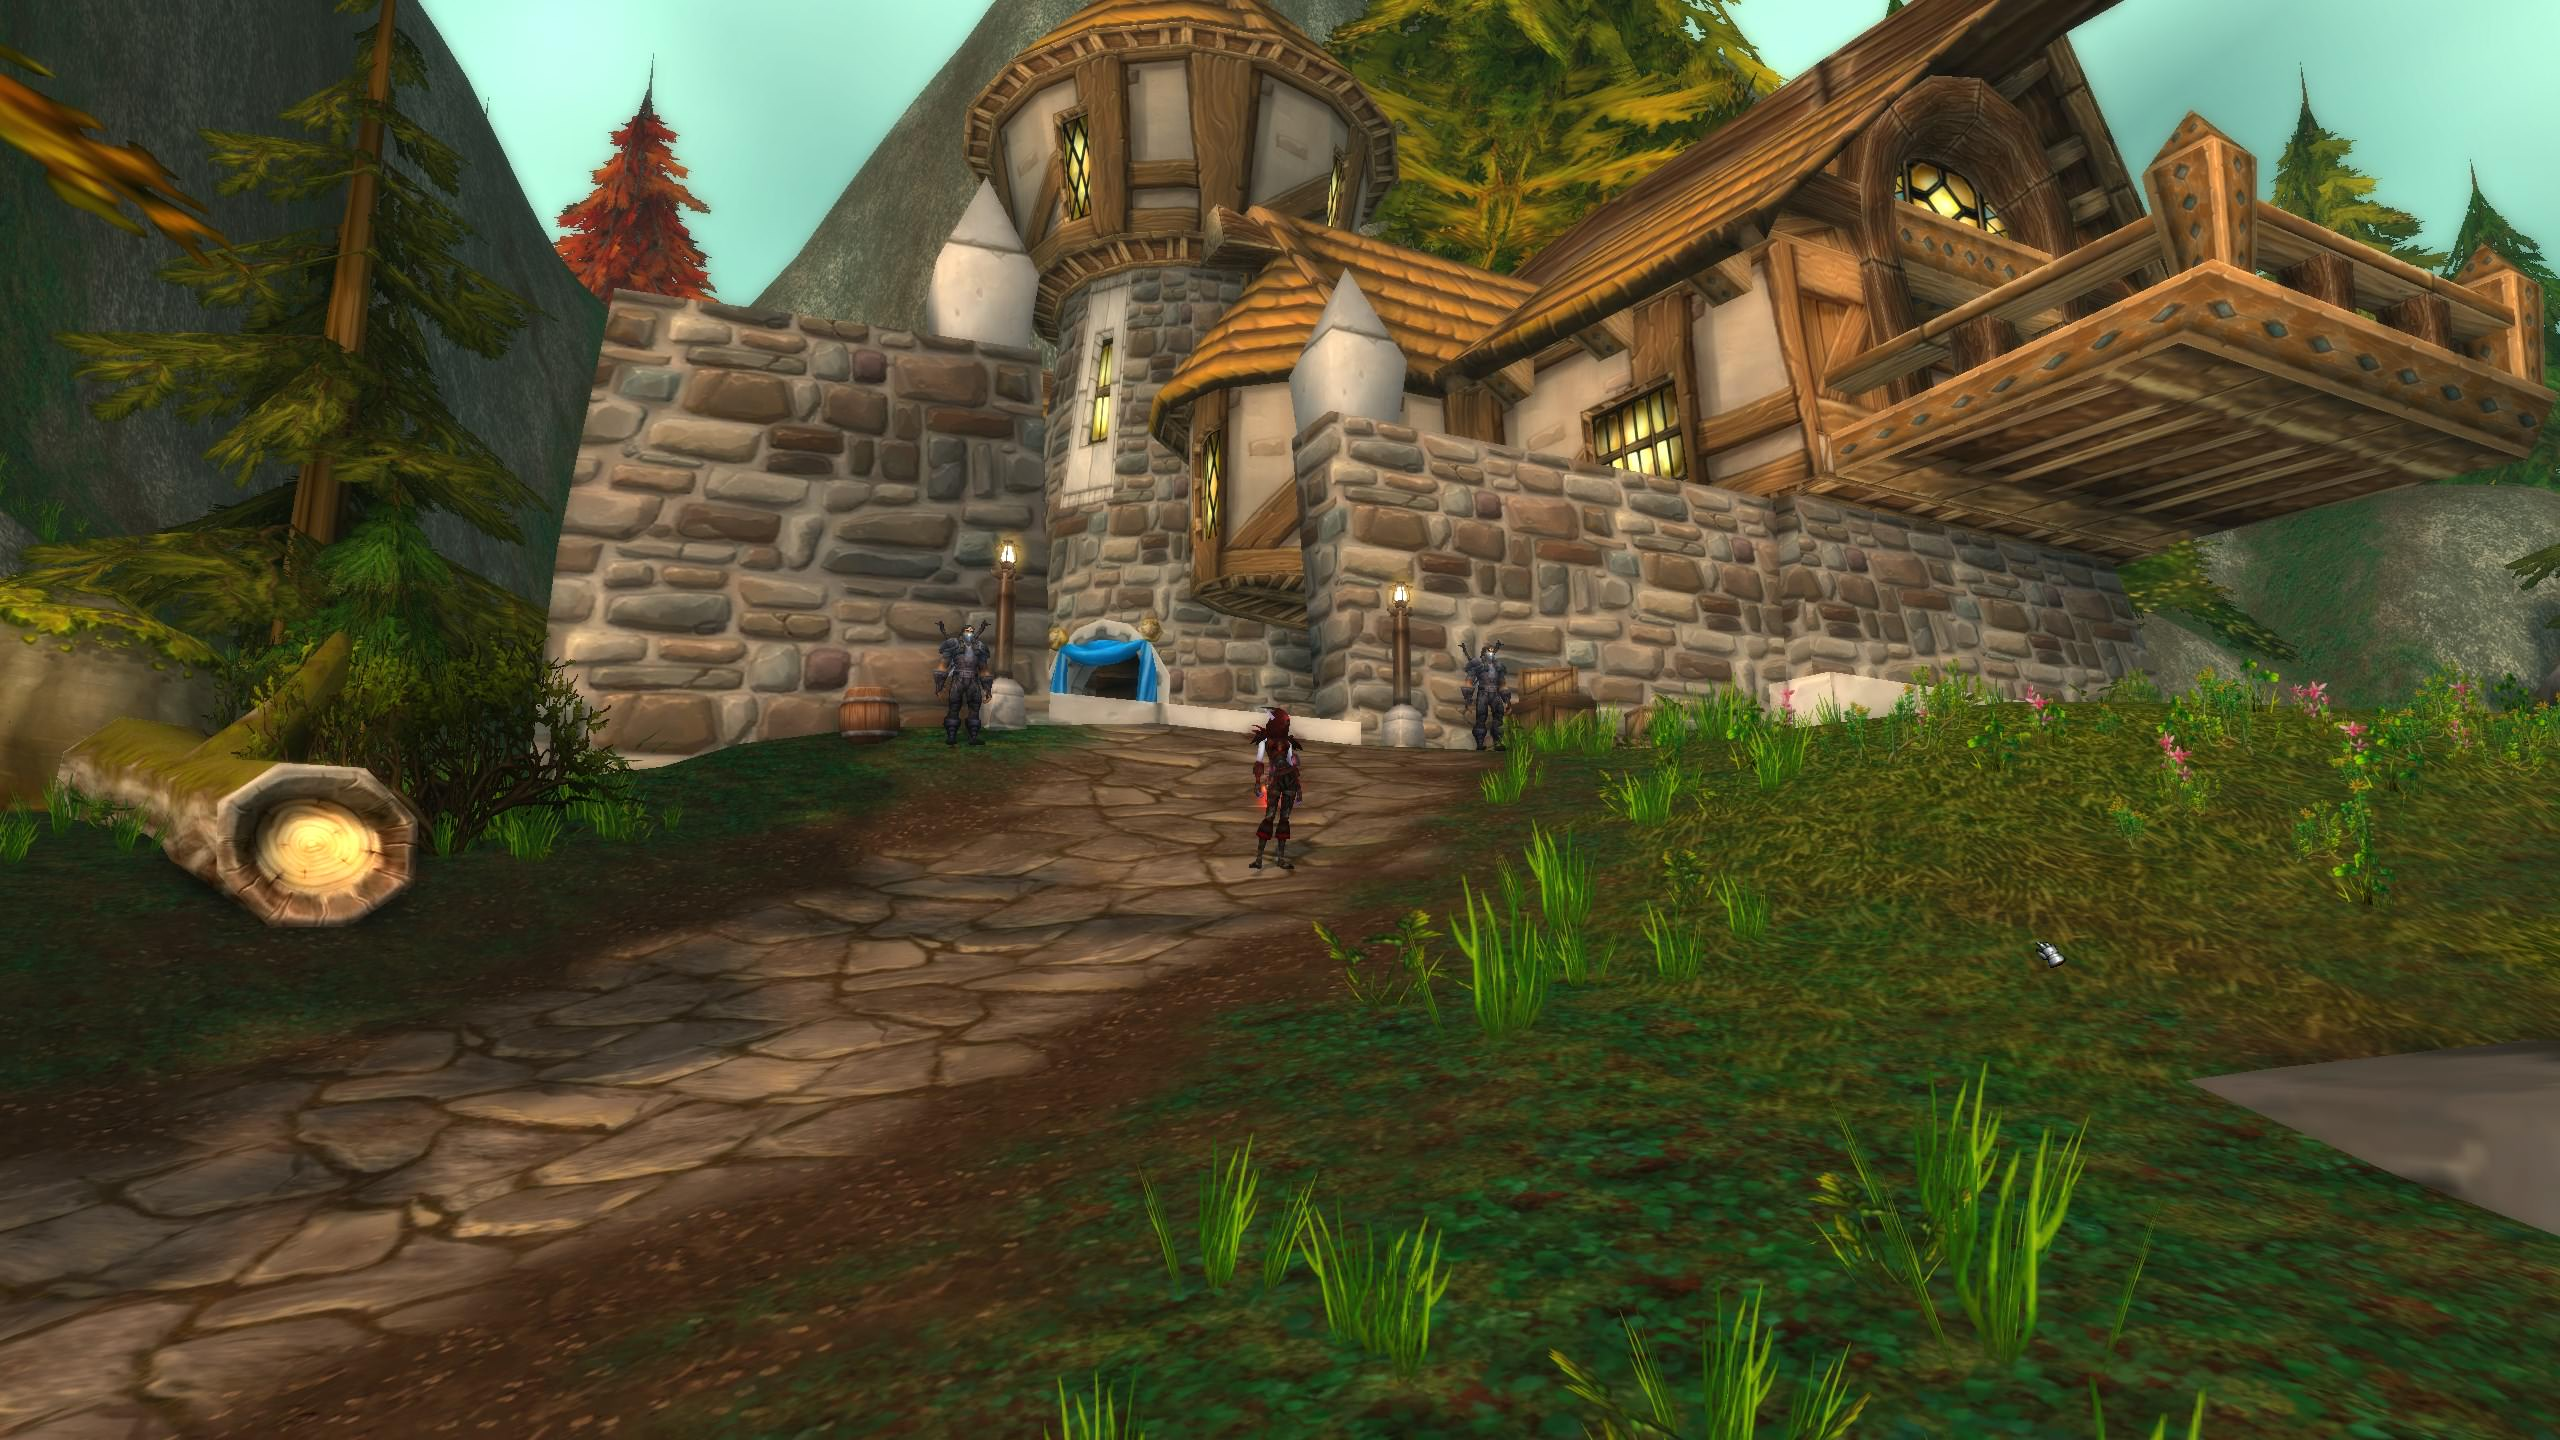 Back to basics : Old Ravenholdt / Submitted by Perfecto